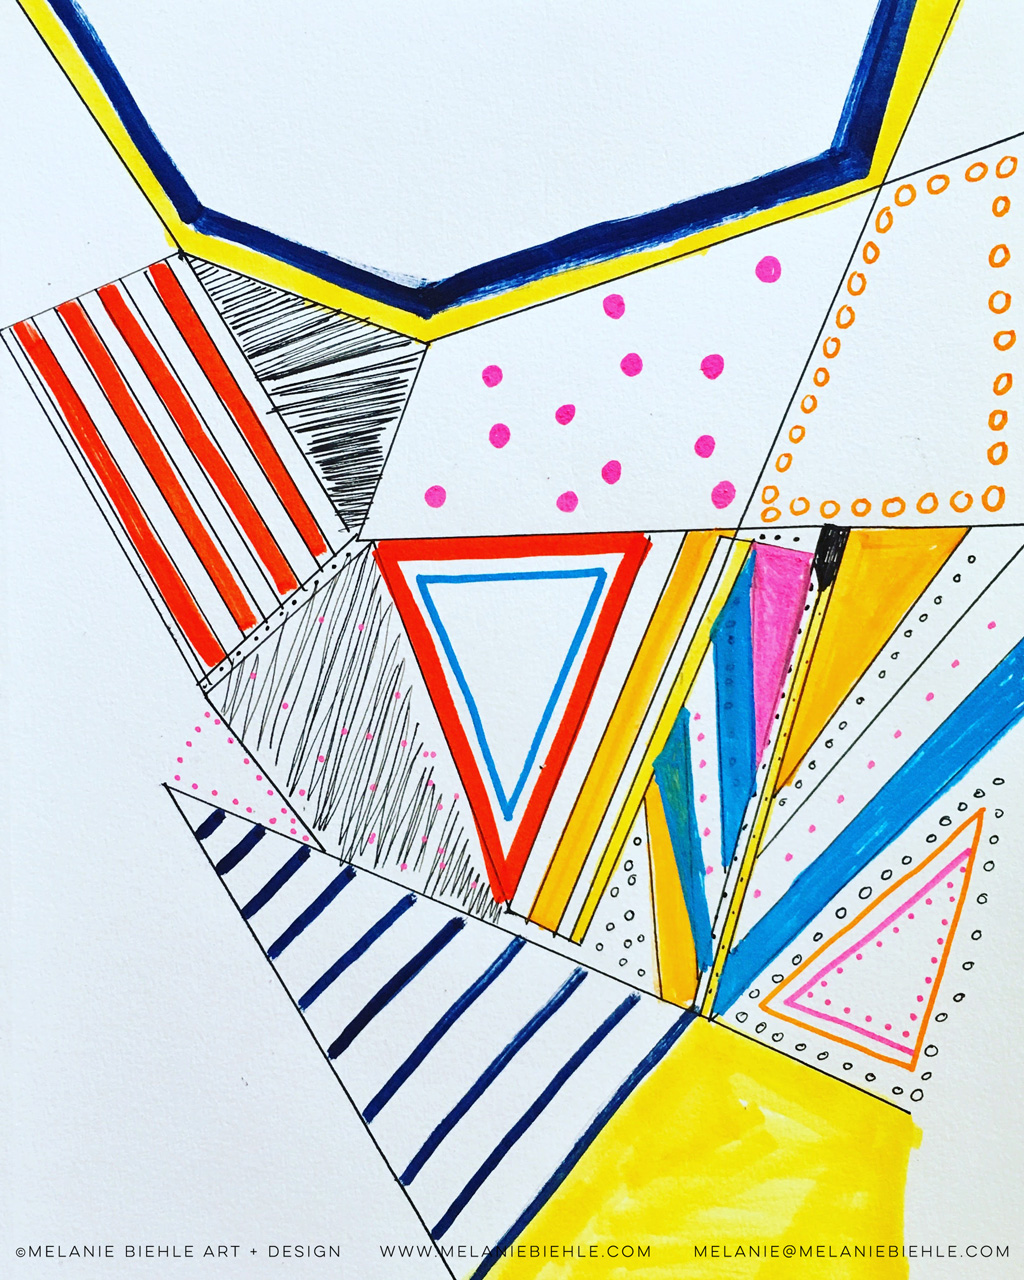 Hand Drawn Bright Geometric Surface Design by Melanie Biehle